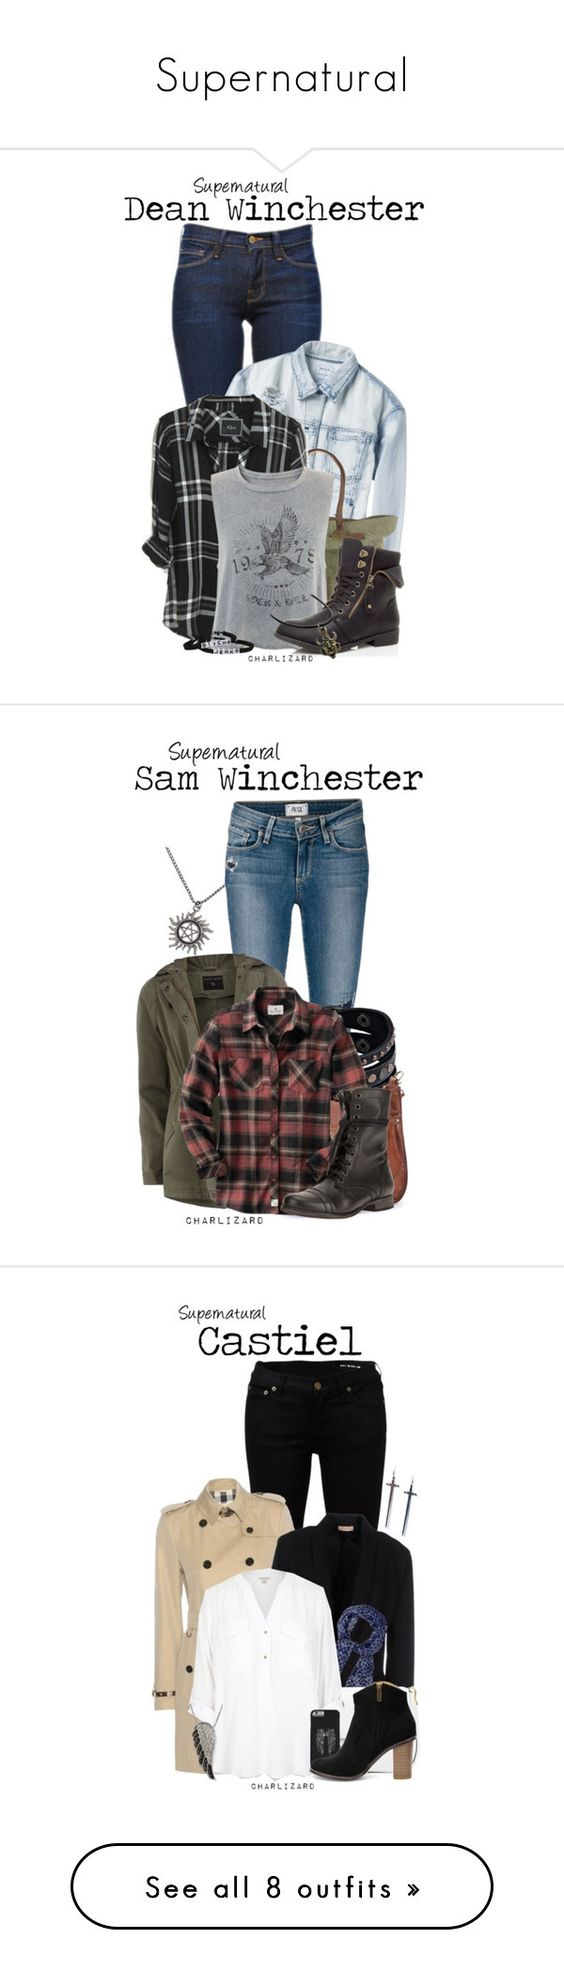 """Supernatural"" by charlizard ❤ liked on Polyvore featuring Frame Denim, RVCA, Will Leather Goods, Rails, supernatural, DeanWinchester, spn, winchesters, Paige Denim and Dorothy Perkins"